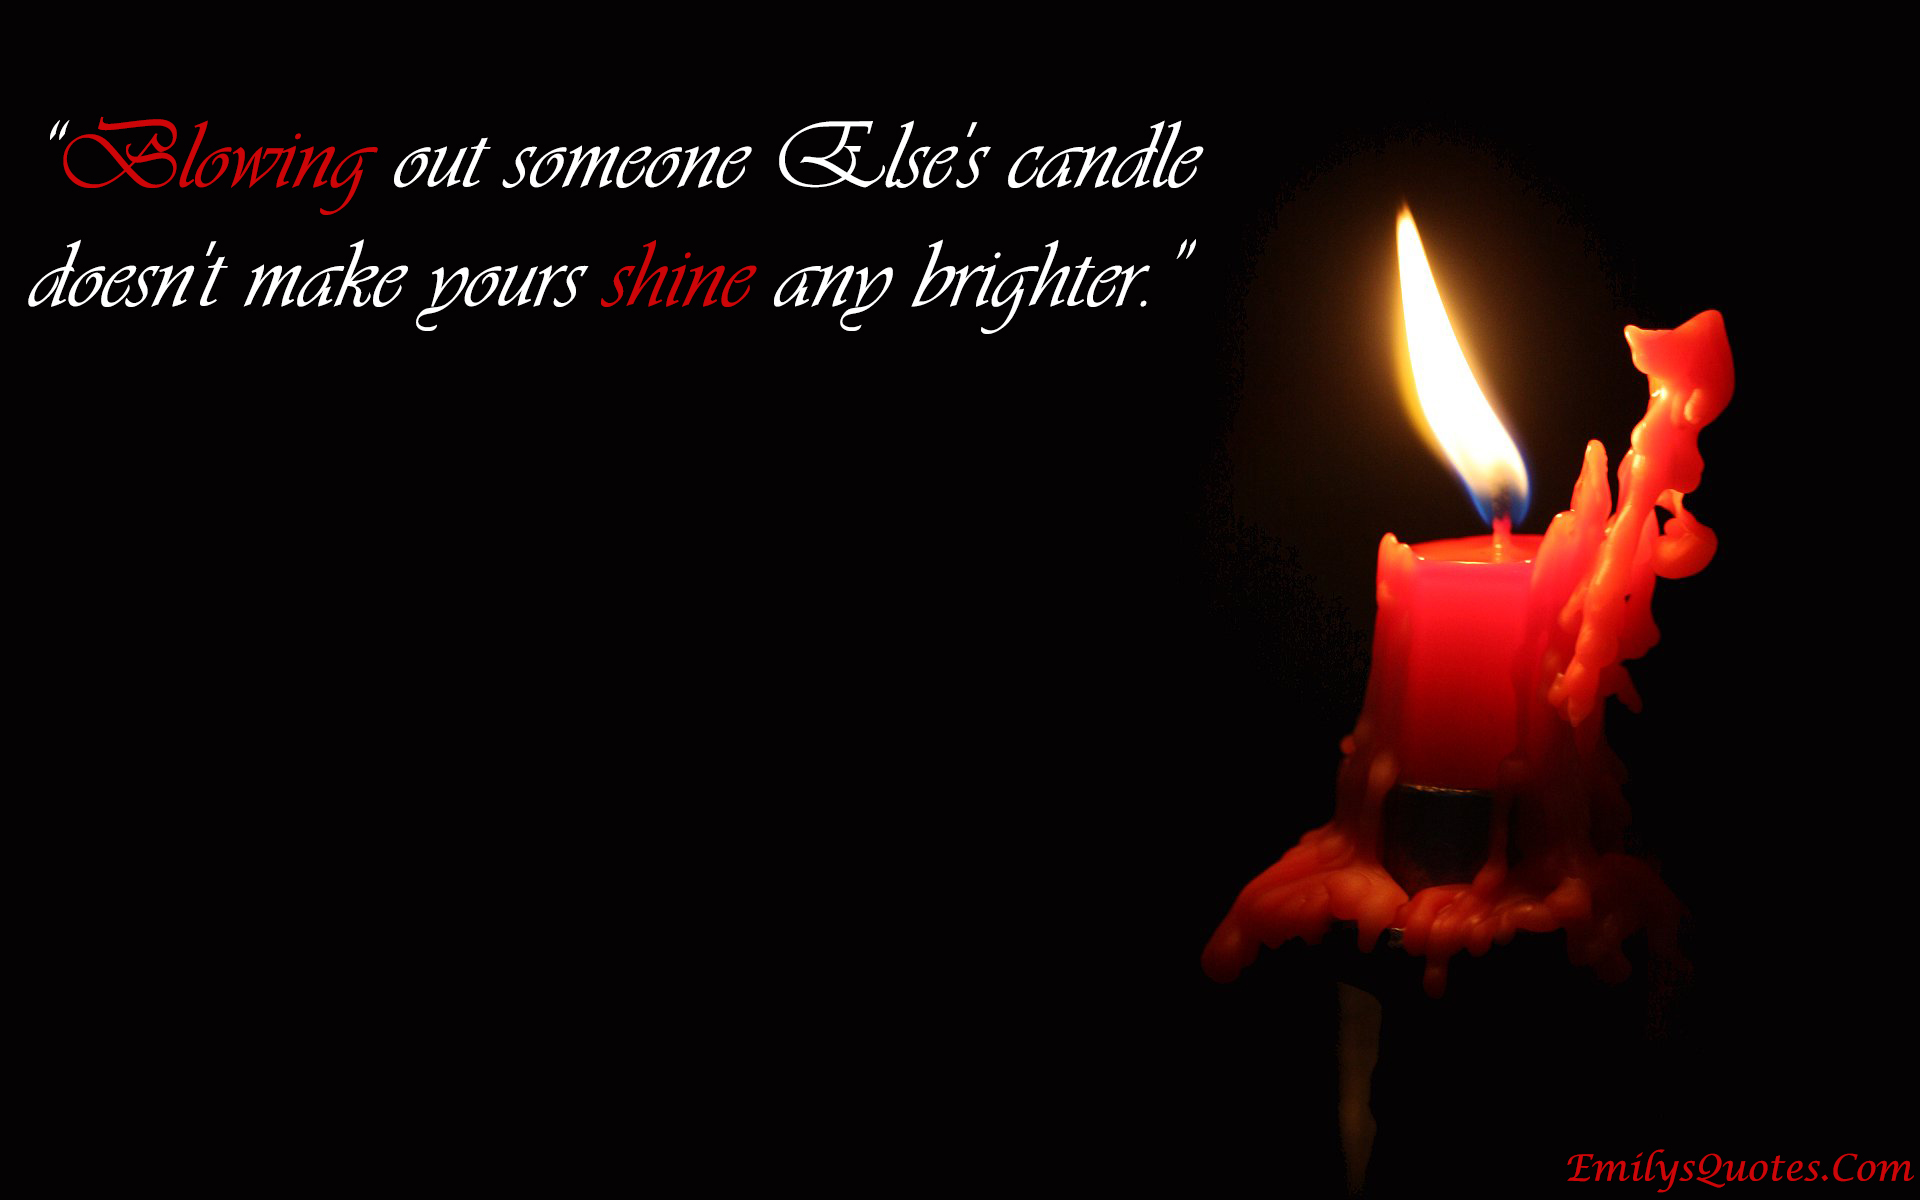 EmilysQuotes.Com - shine, candle, jealousy, intelligence